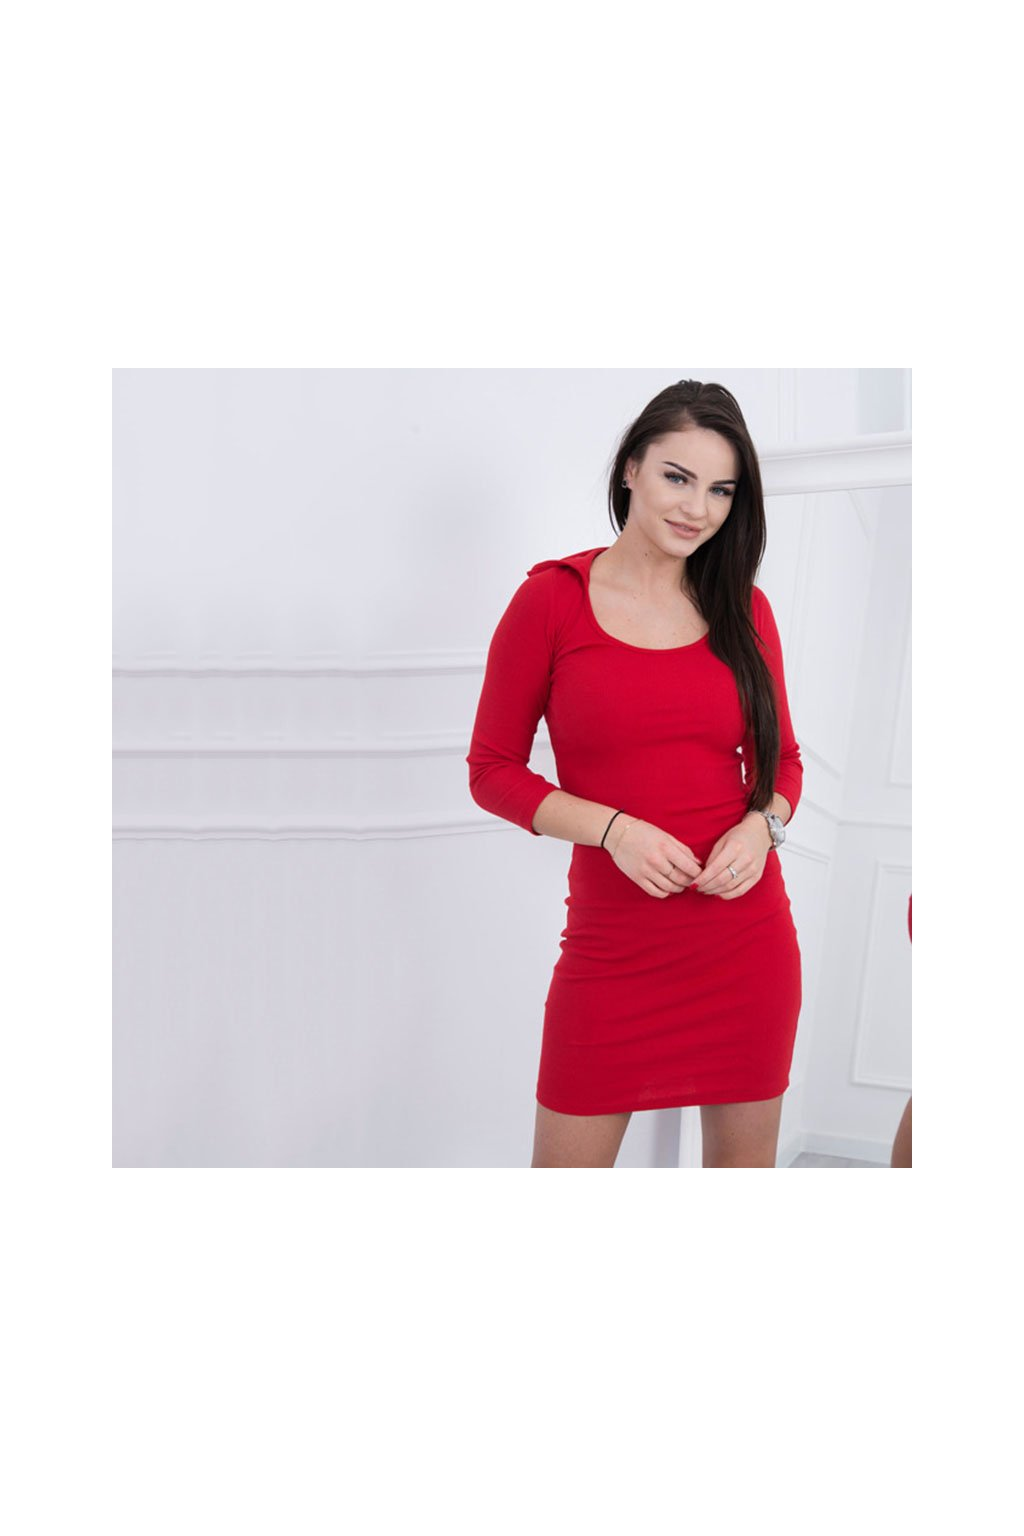 eng pm Lace up dress with a hood red 12025 3